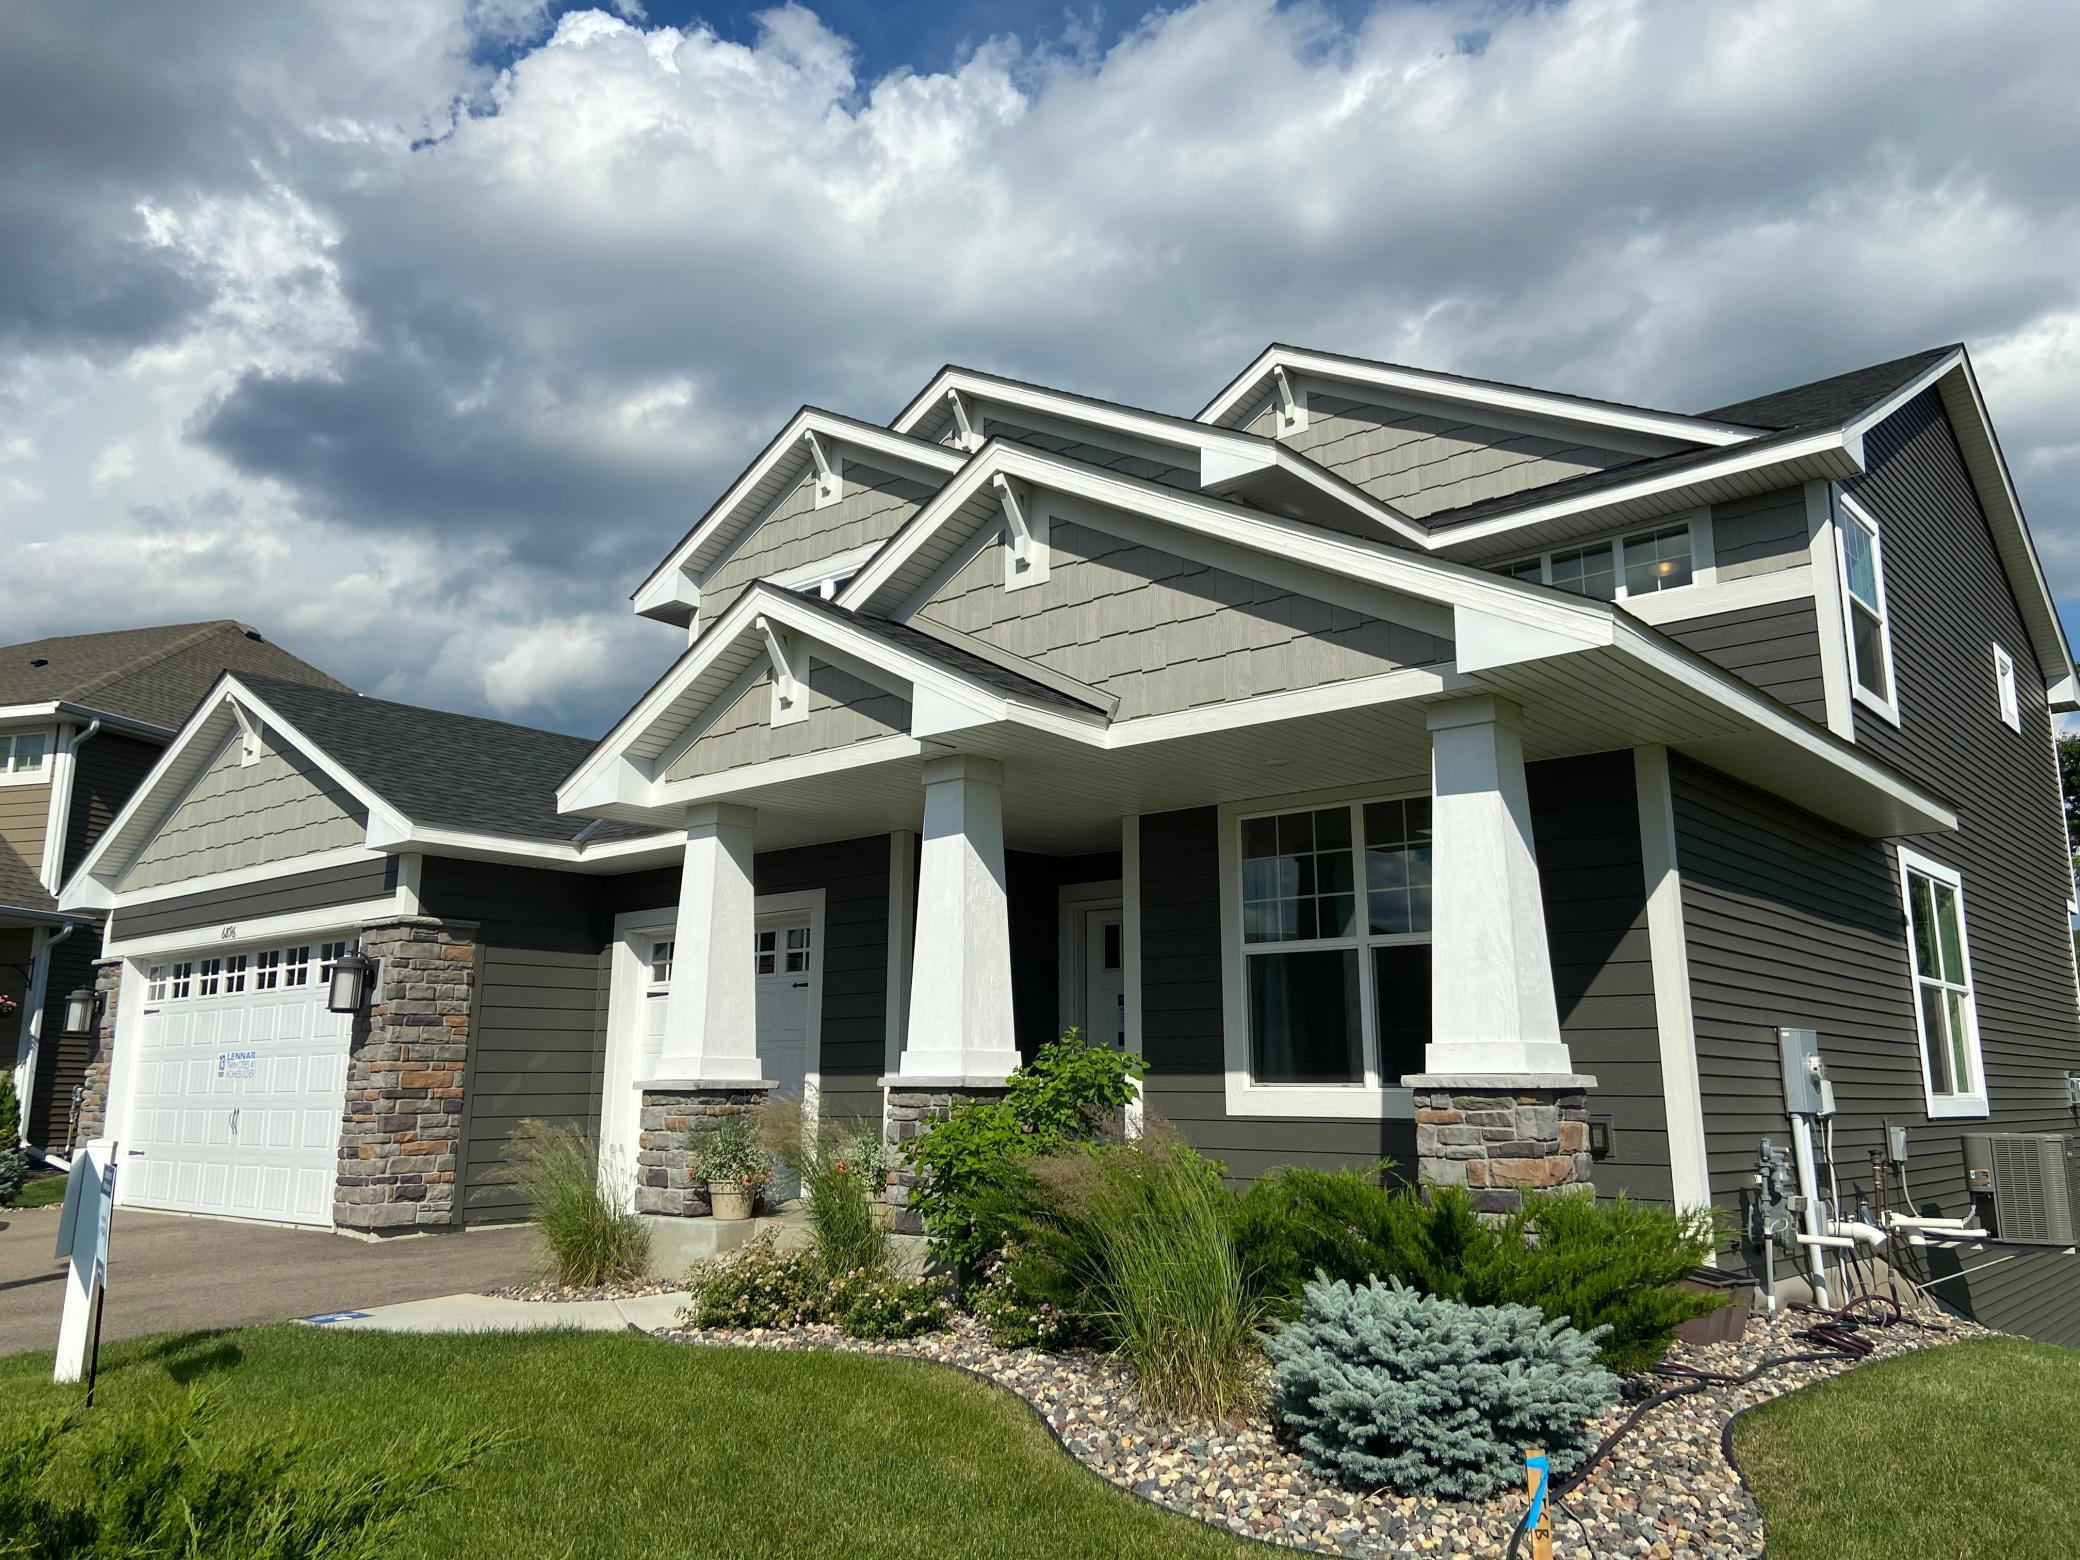 6896 Alverno Property Photo - Inver Grove Heights, MN real estate listing